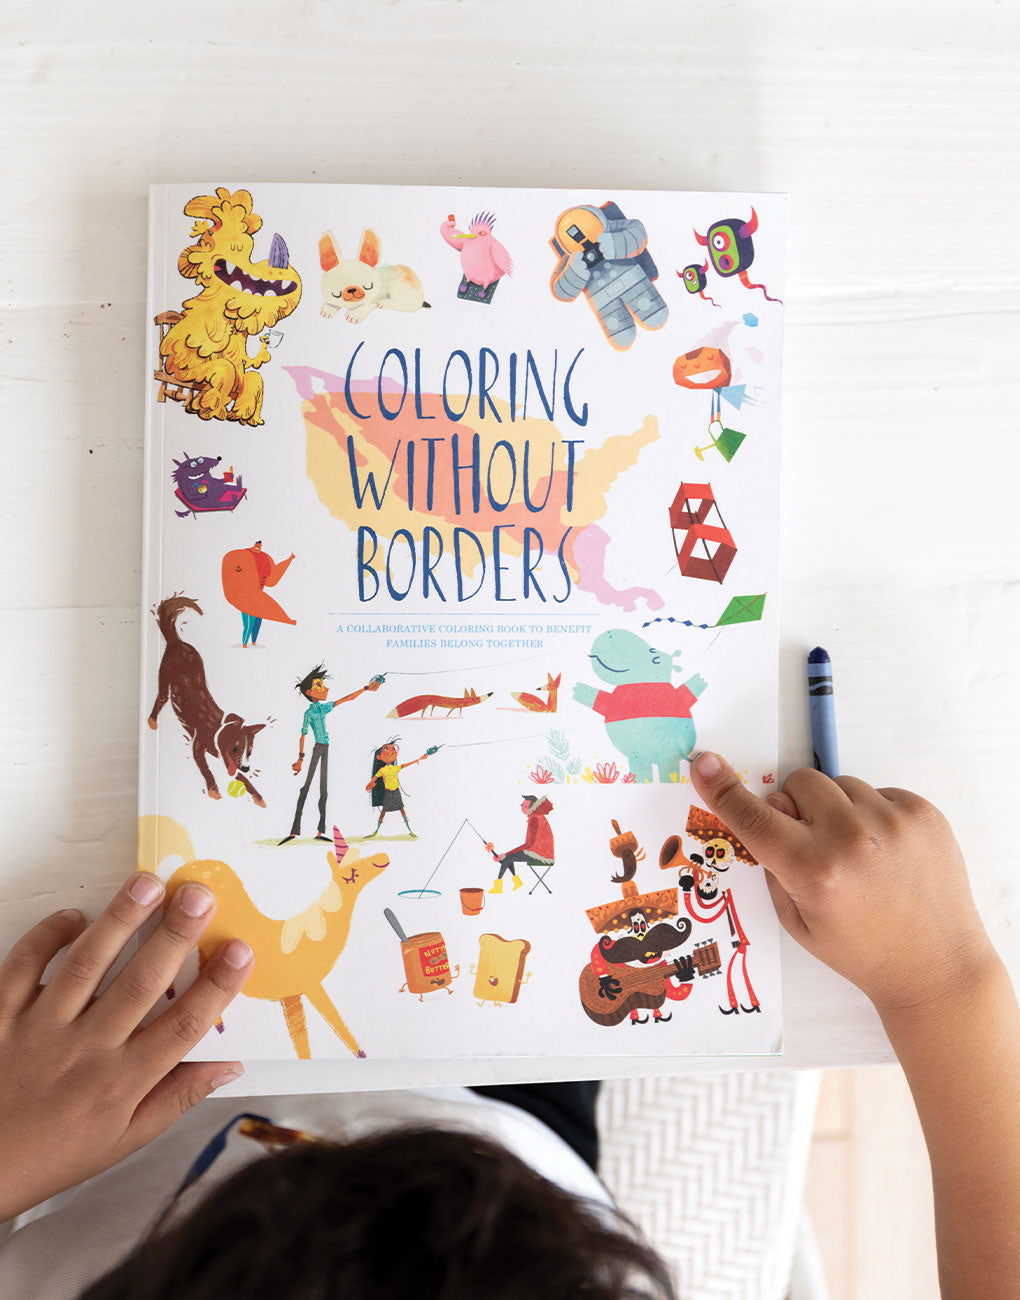 Coloring Without Borders Coloring Book Supporting Separated From Their Families